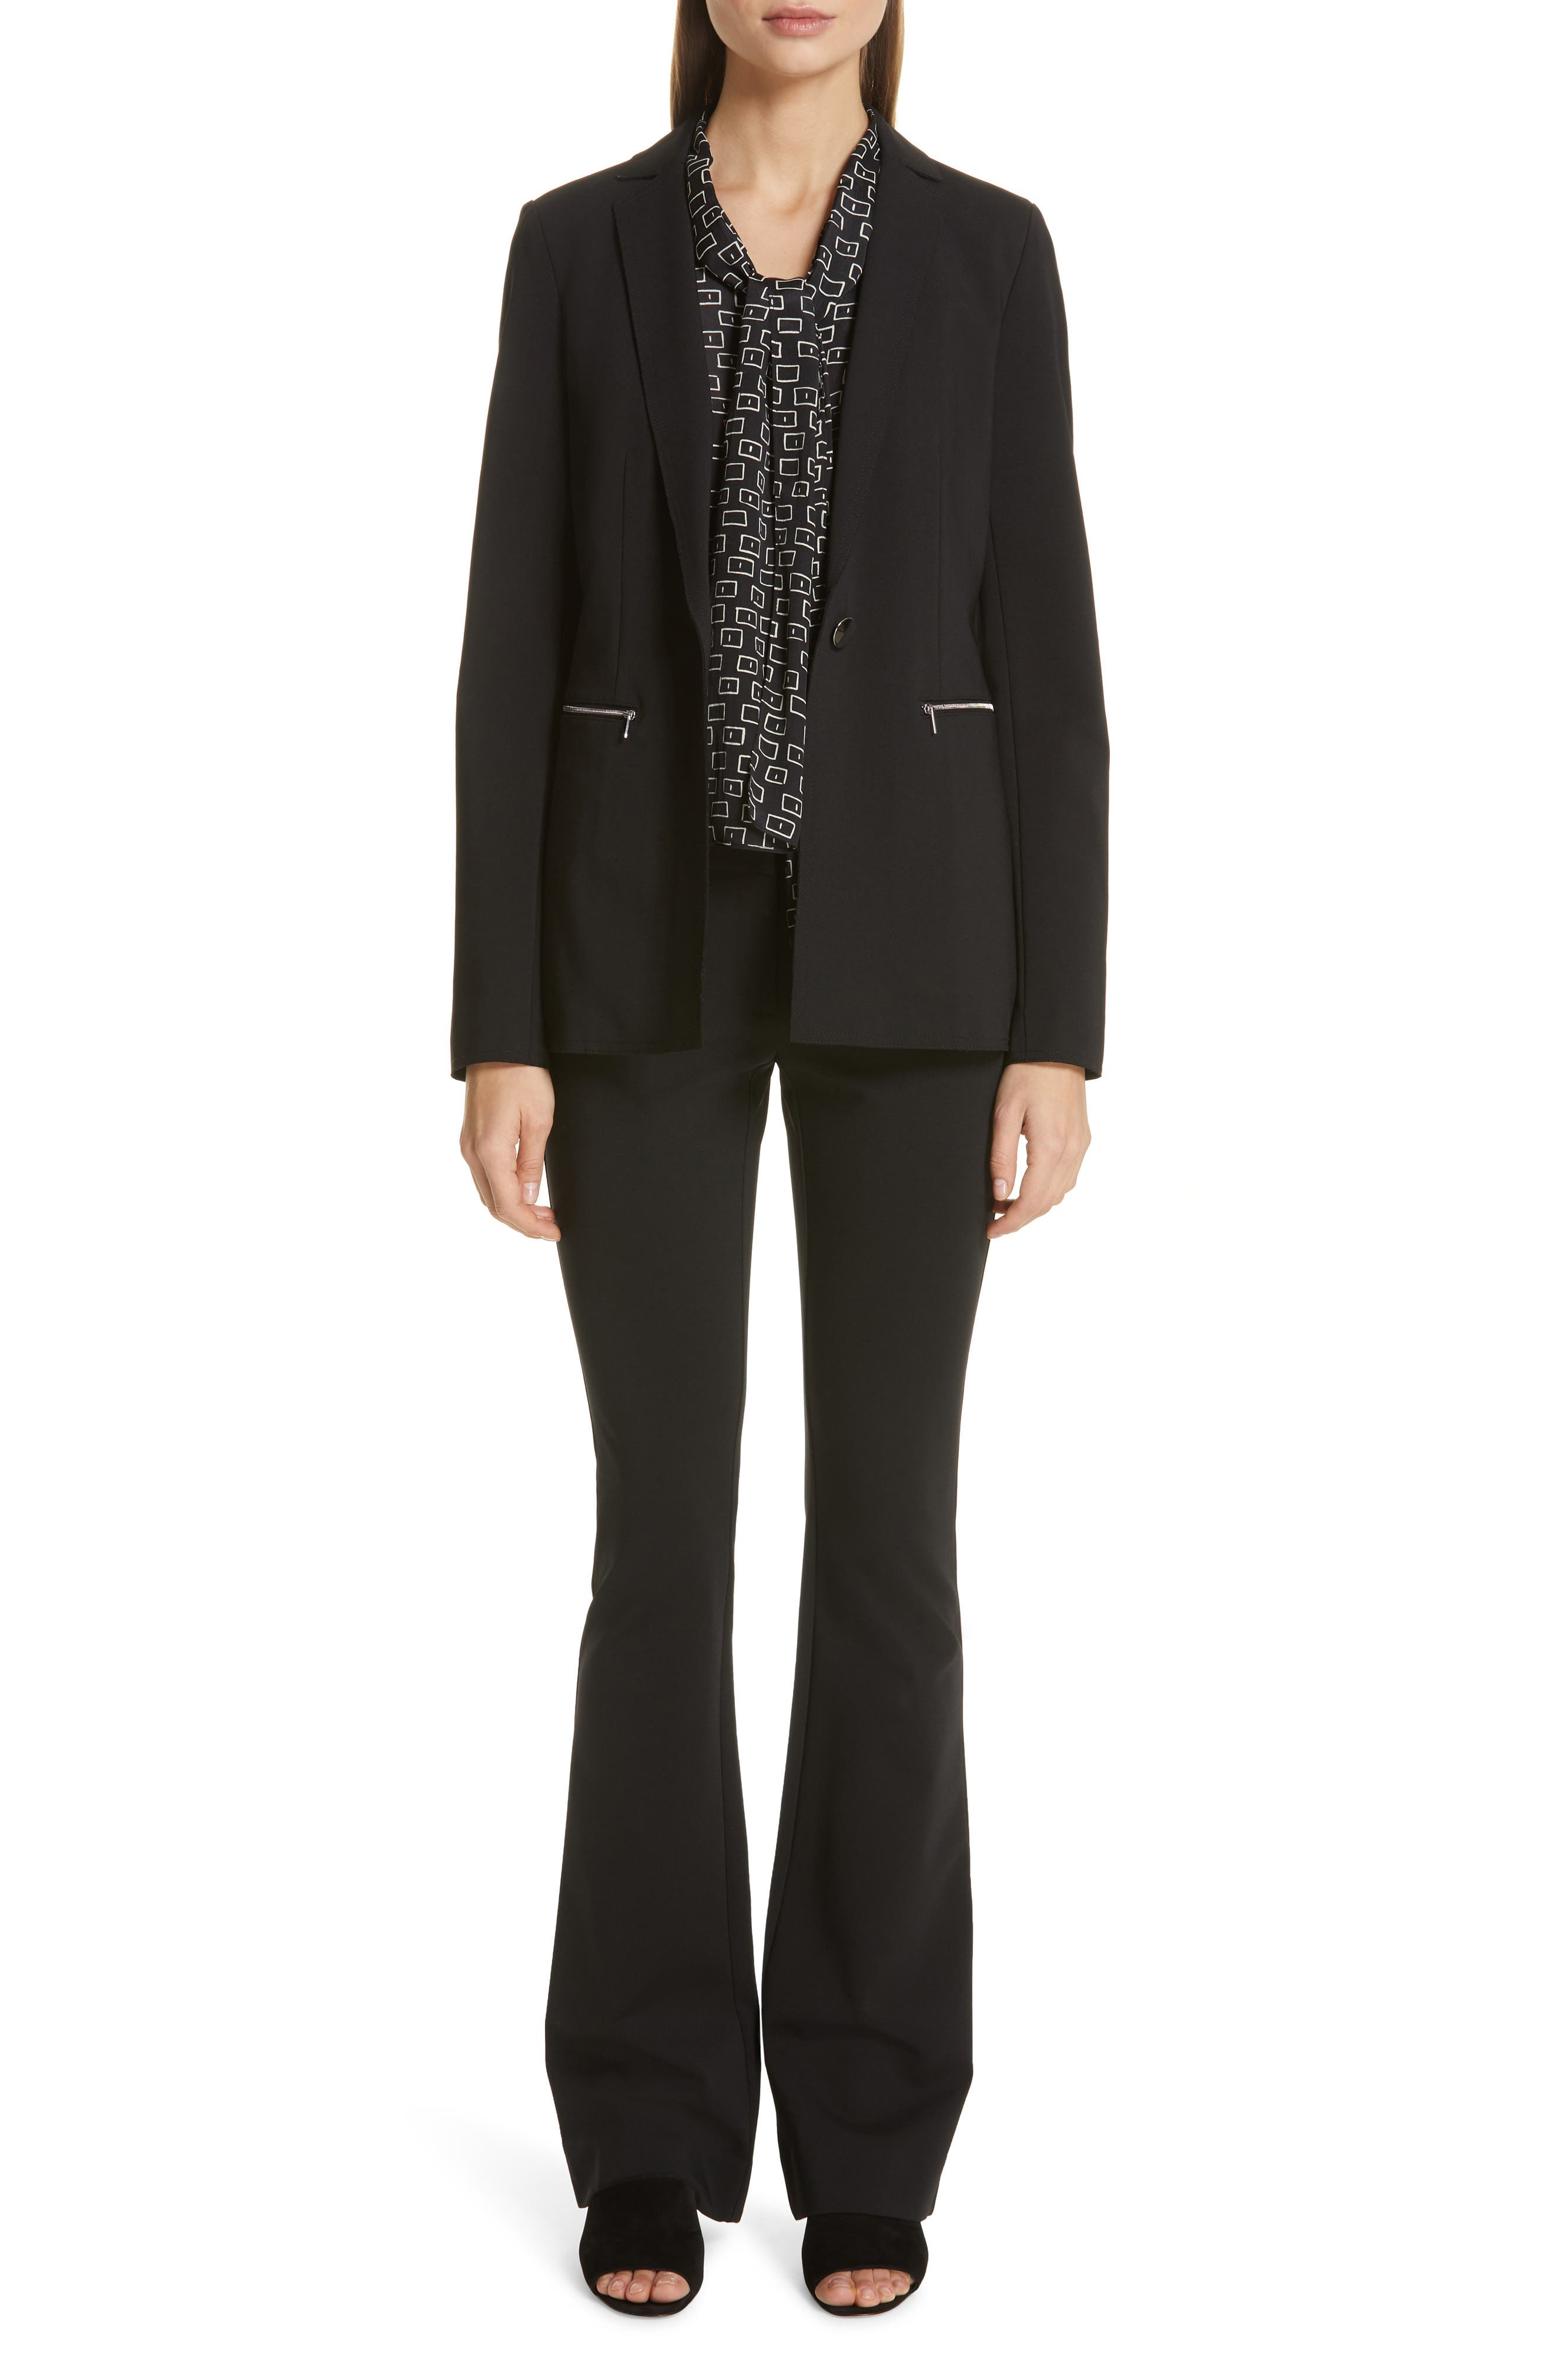 LAFAYETTE 148 NEW YORK,                             Waldorf Flare Pants,                             Alternate thumbnail 7, color,                             BLACK